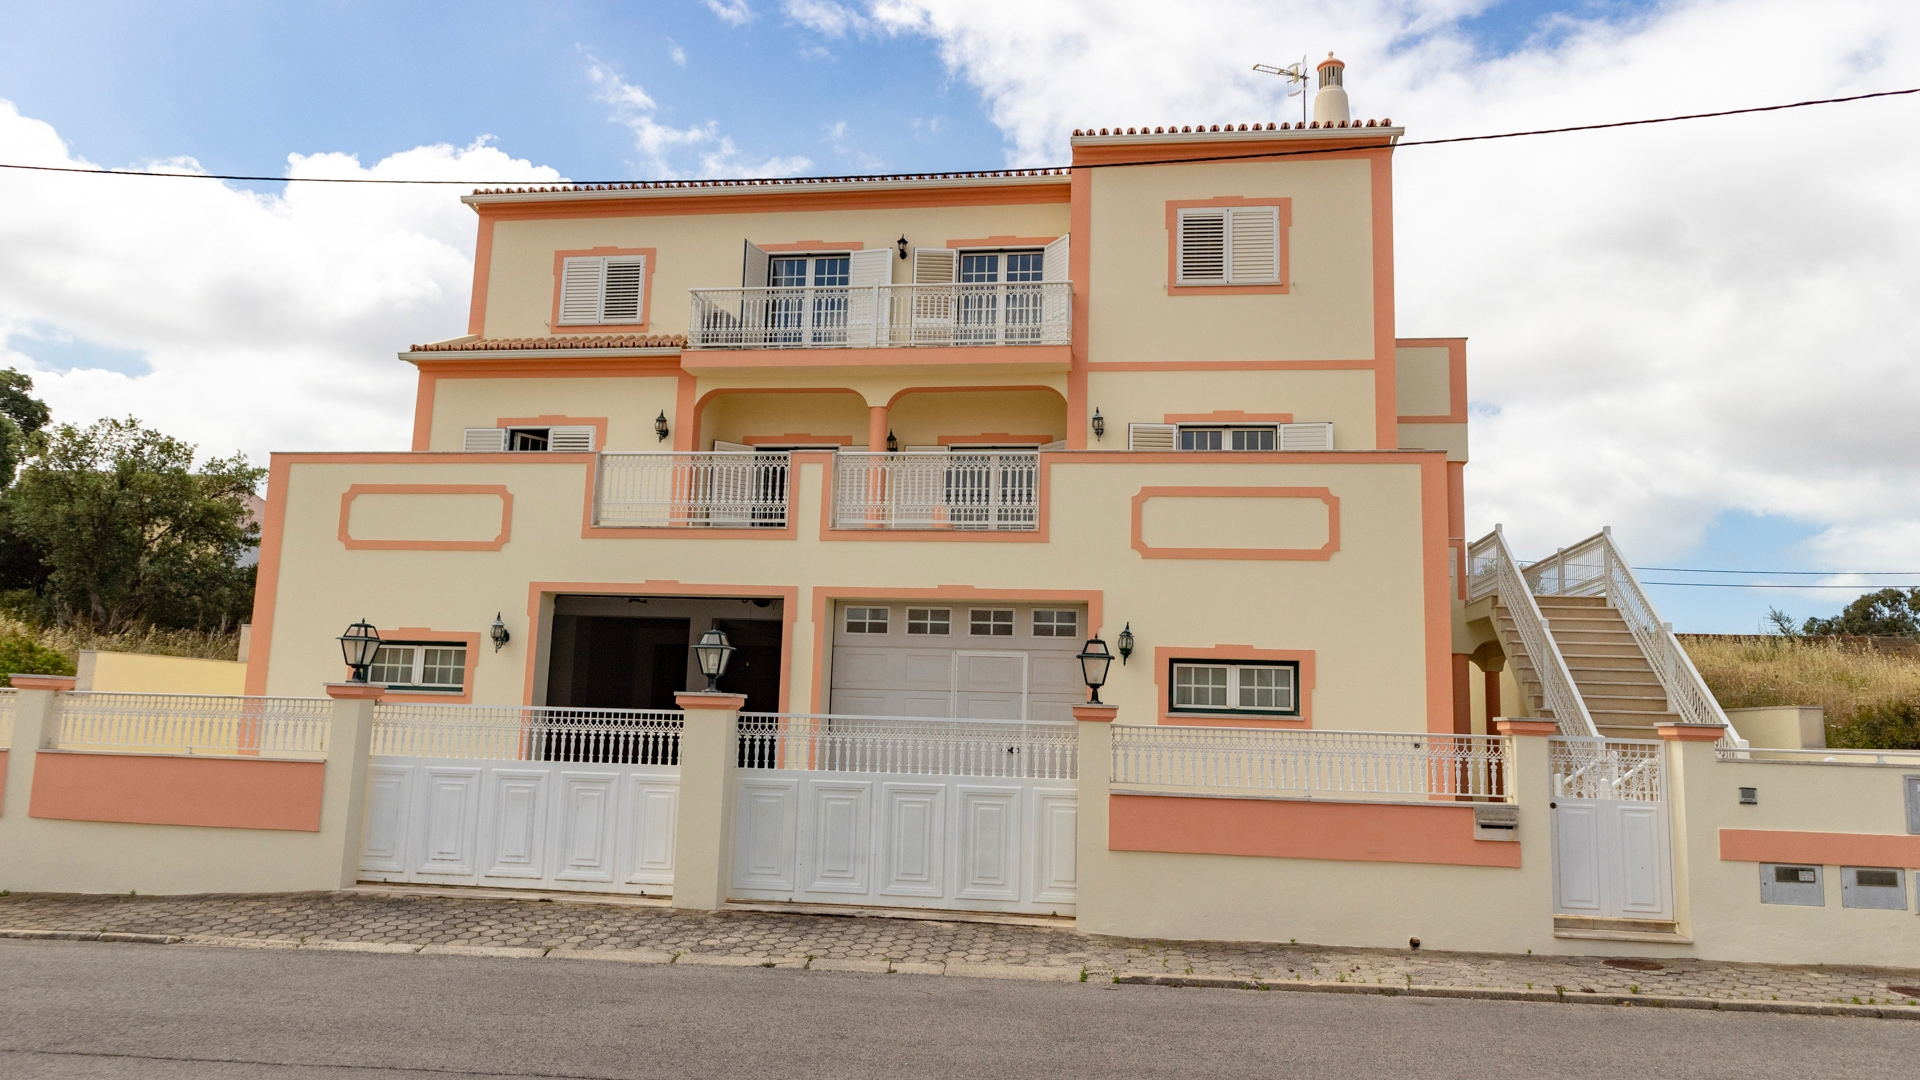 4 Bedroom Villa with T2 apartment close to centre of Algoz | VM1463 Peacefully located villa for large family with possible rental potential within walking distance of all amenities including fitness club and outdoor leisure pool. Lovely views to the hills.